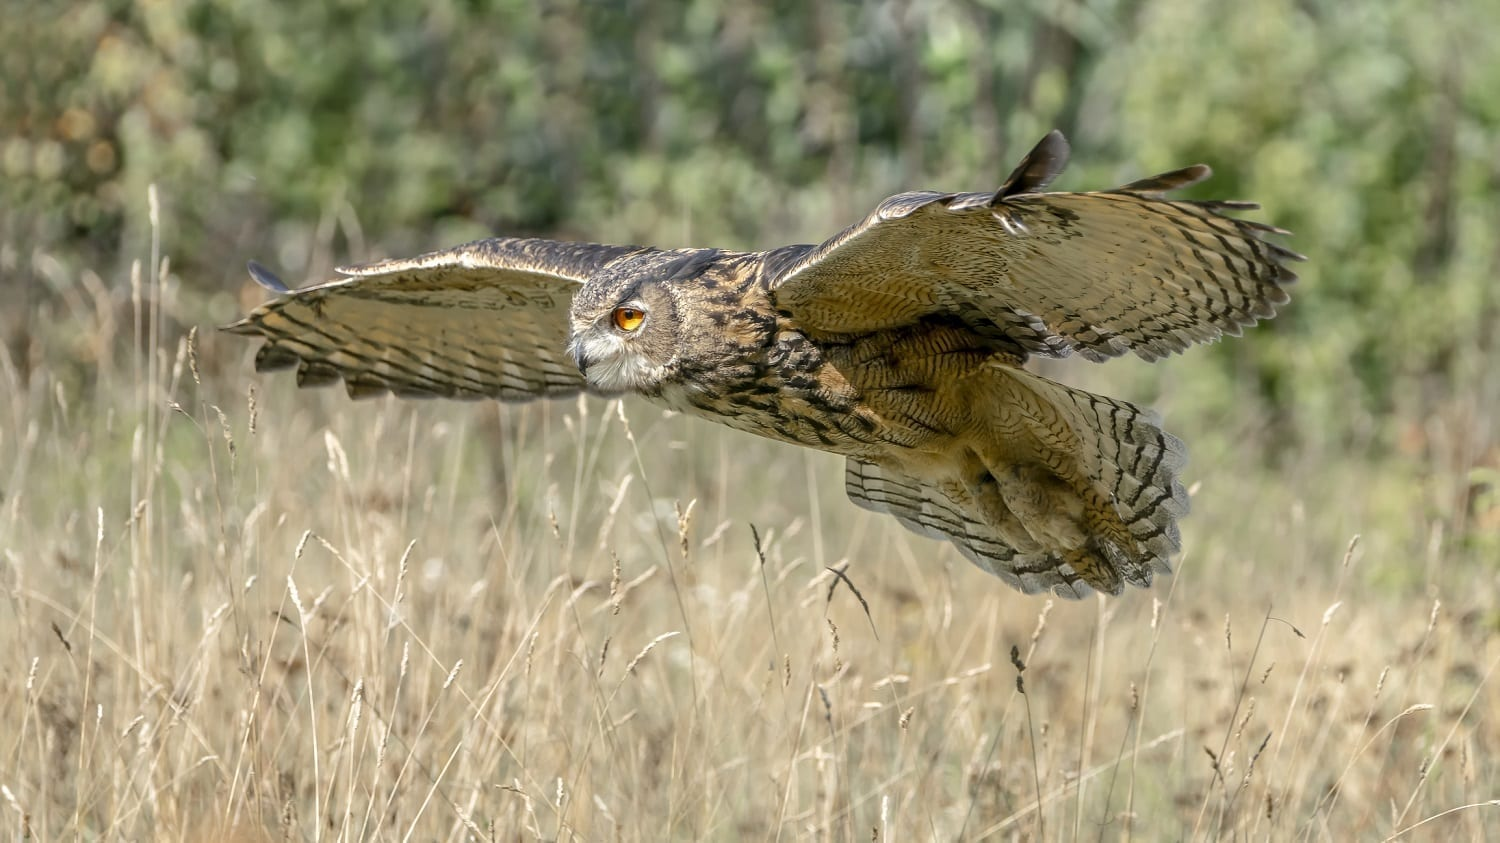 Eurasian Eagle Owl flying over grasses: ID 158990579 © Agdbeukhof | Dreamstime.com